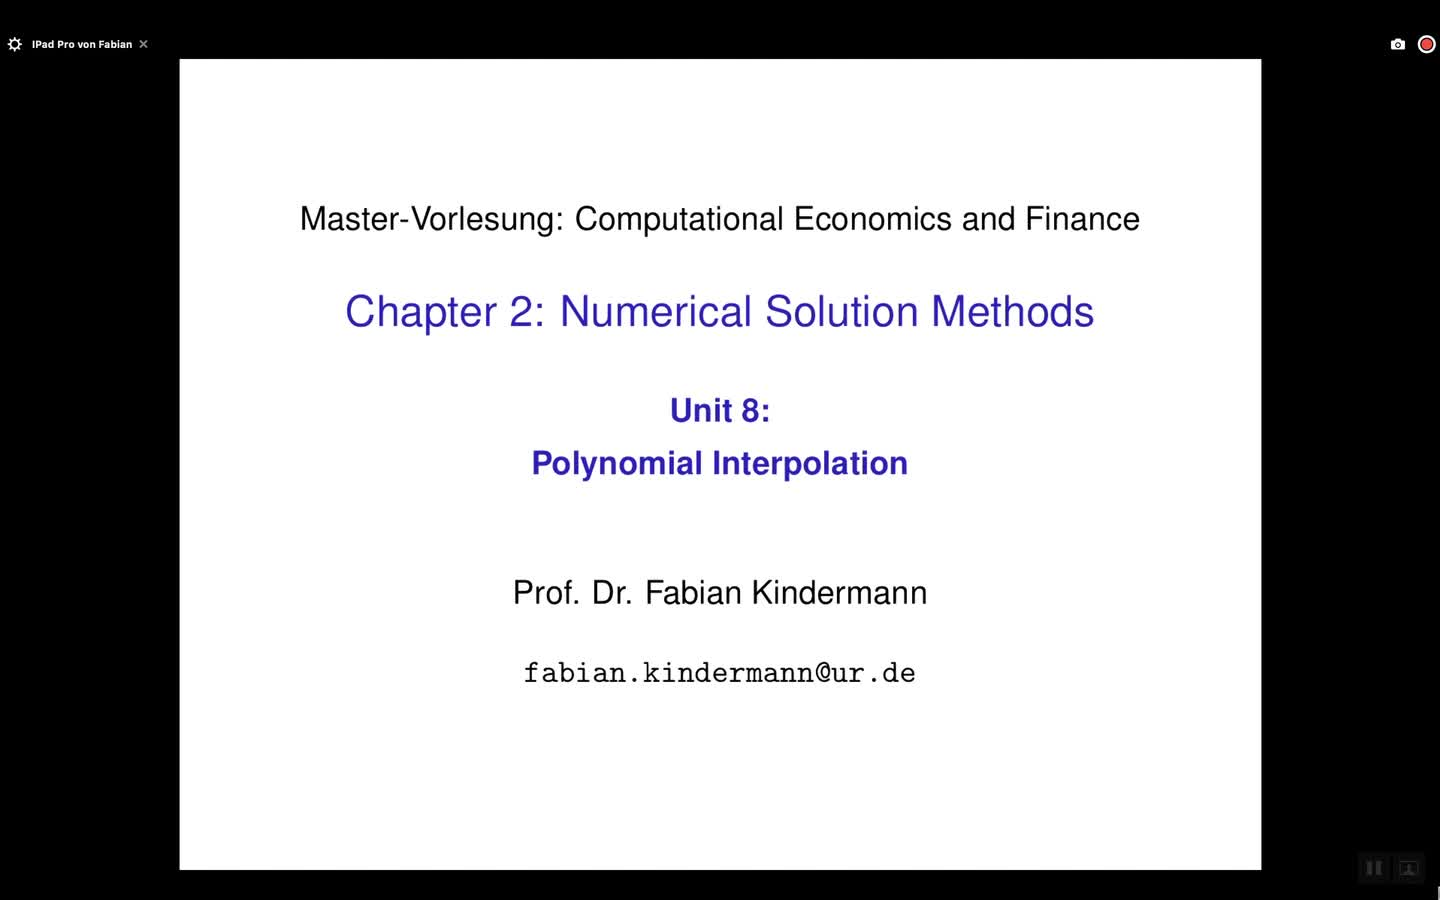 Chapter 2 - Unit 8 - Polynomial Interpolation